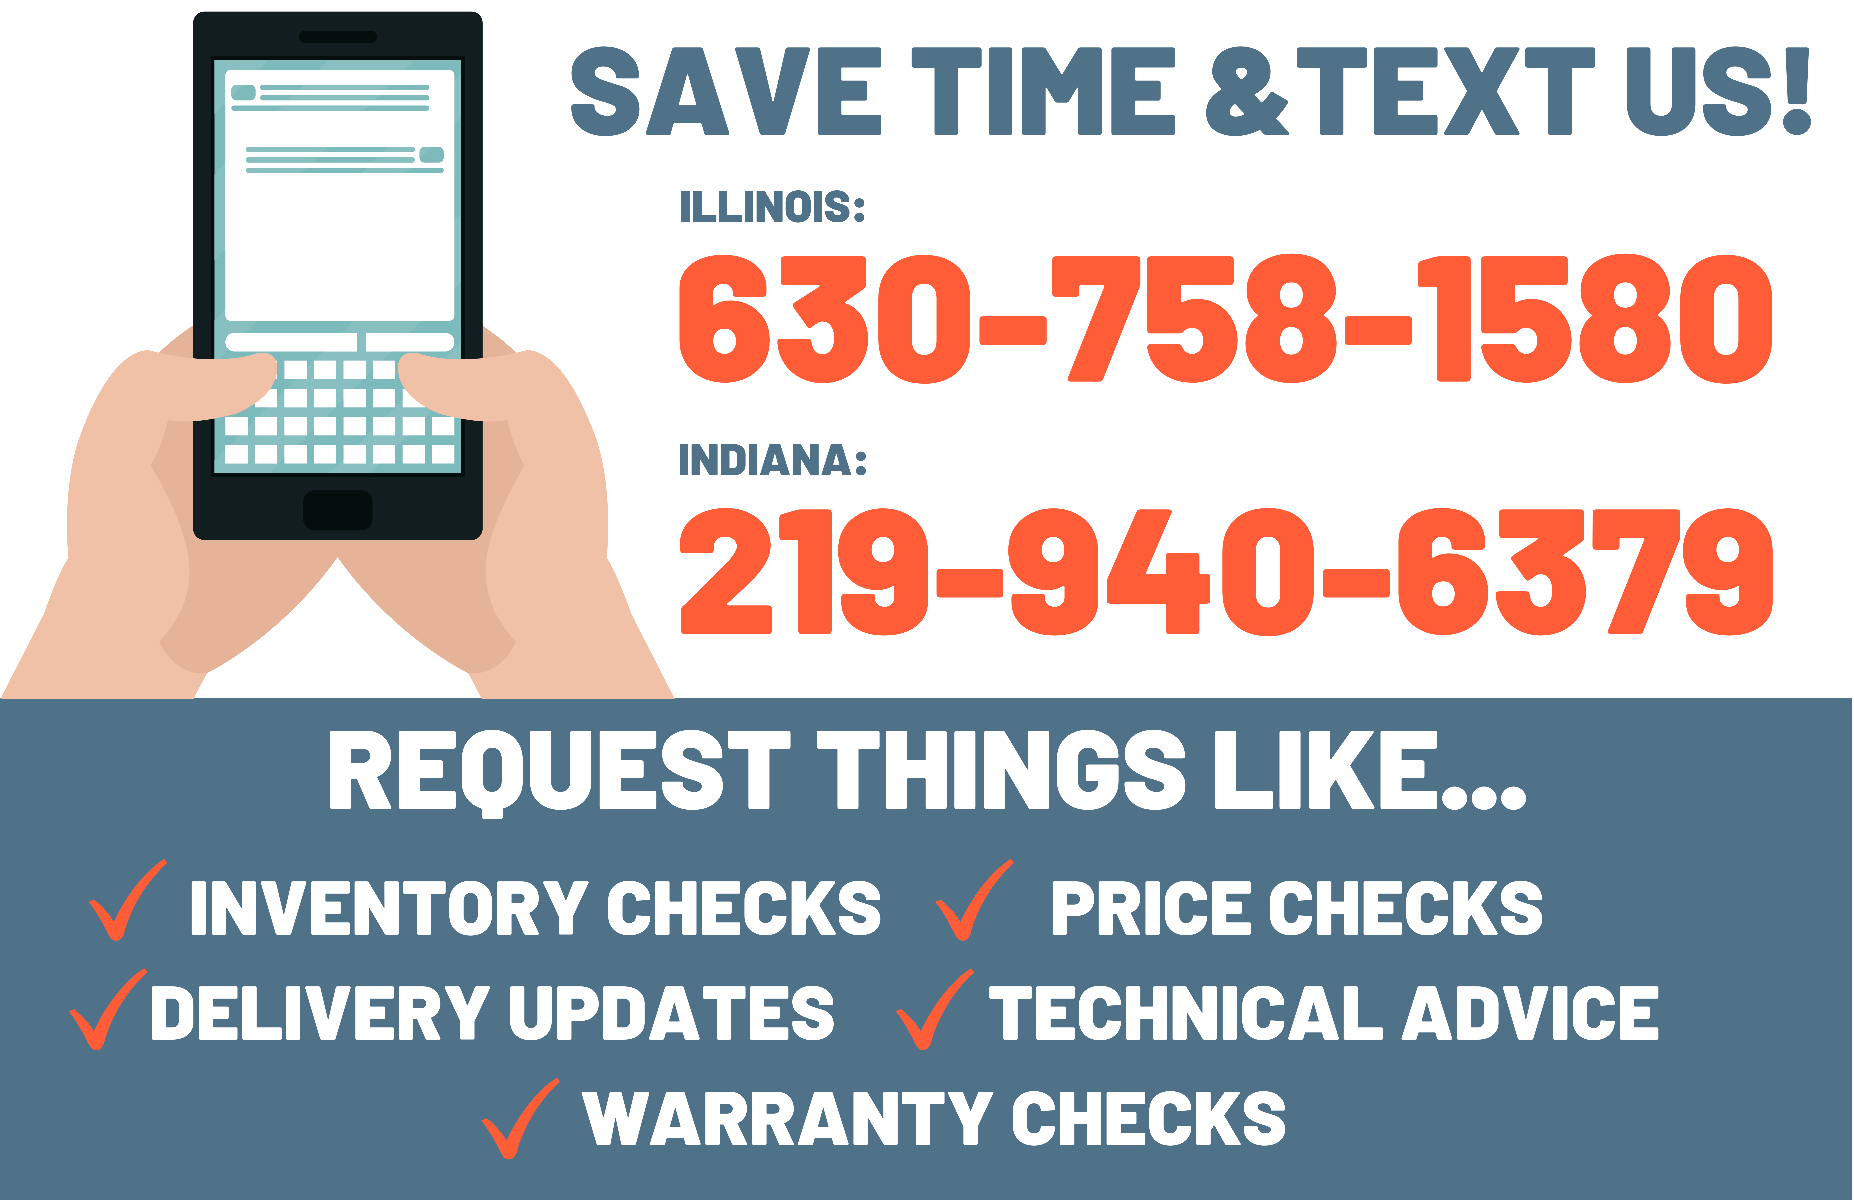 Save Time and Text Us